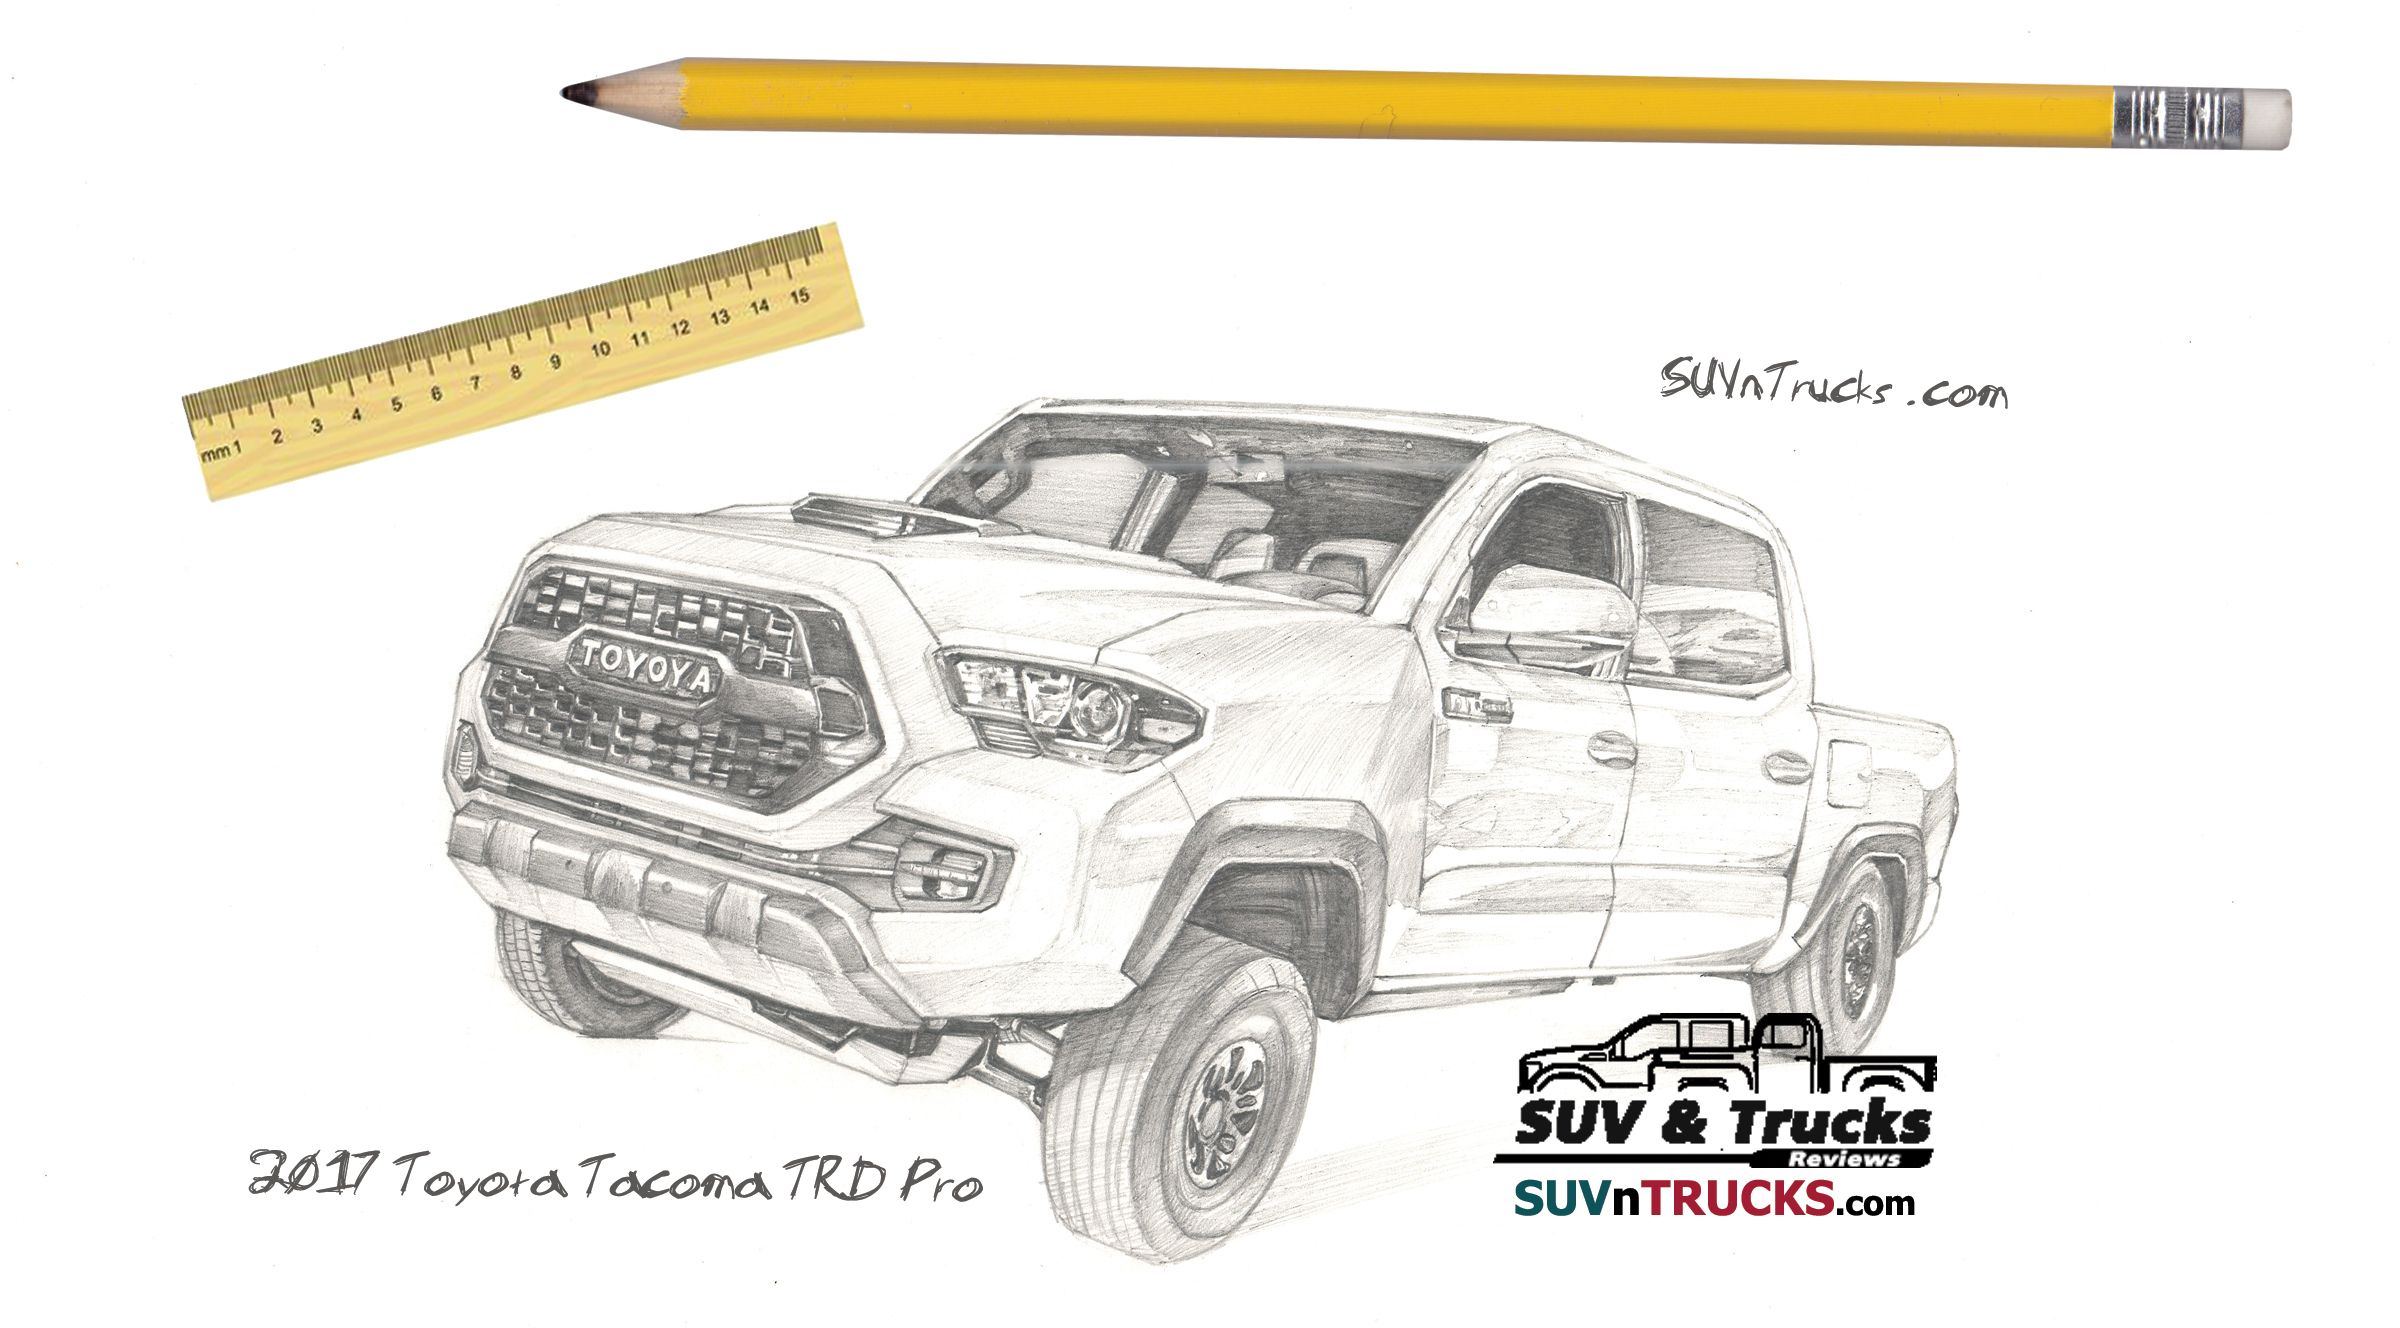 I Draw New 2017 Toyota Tacoma TRD Pro in 2019.